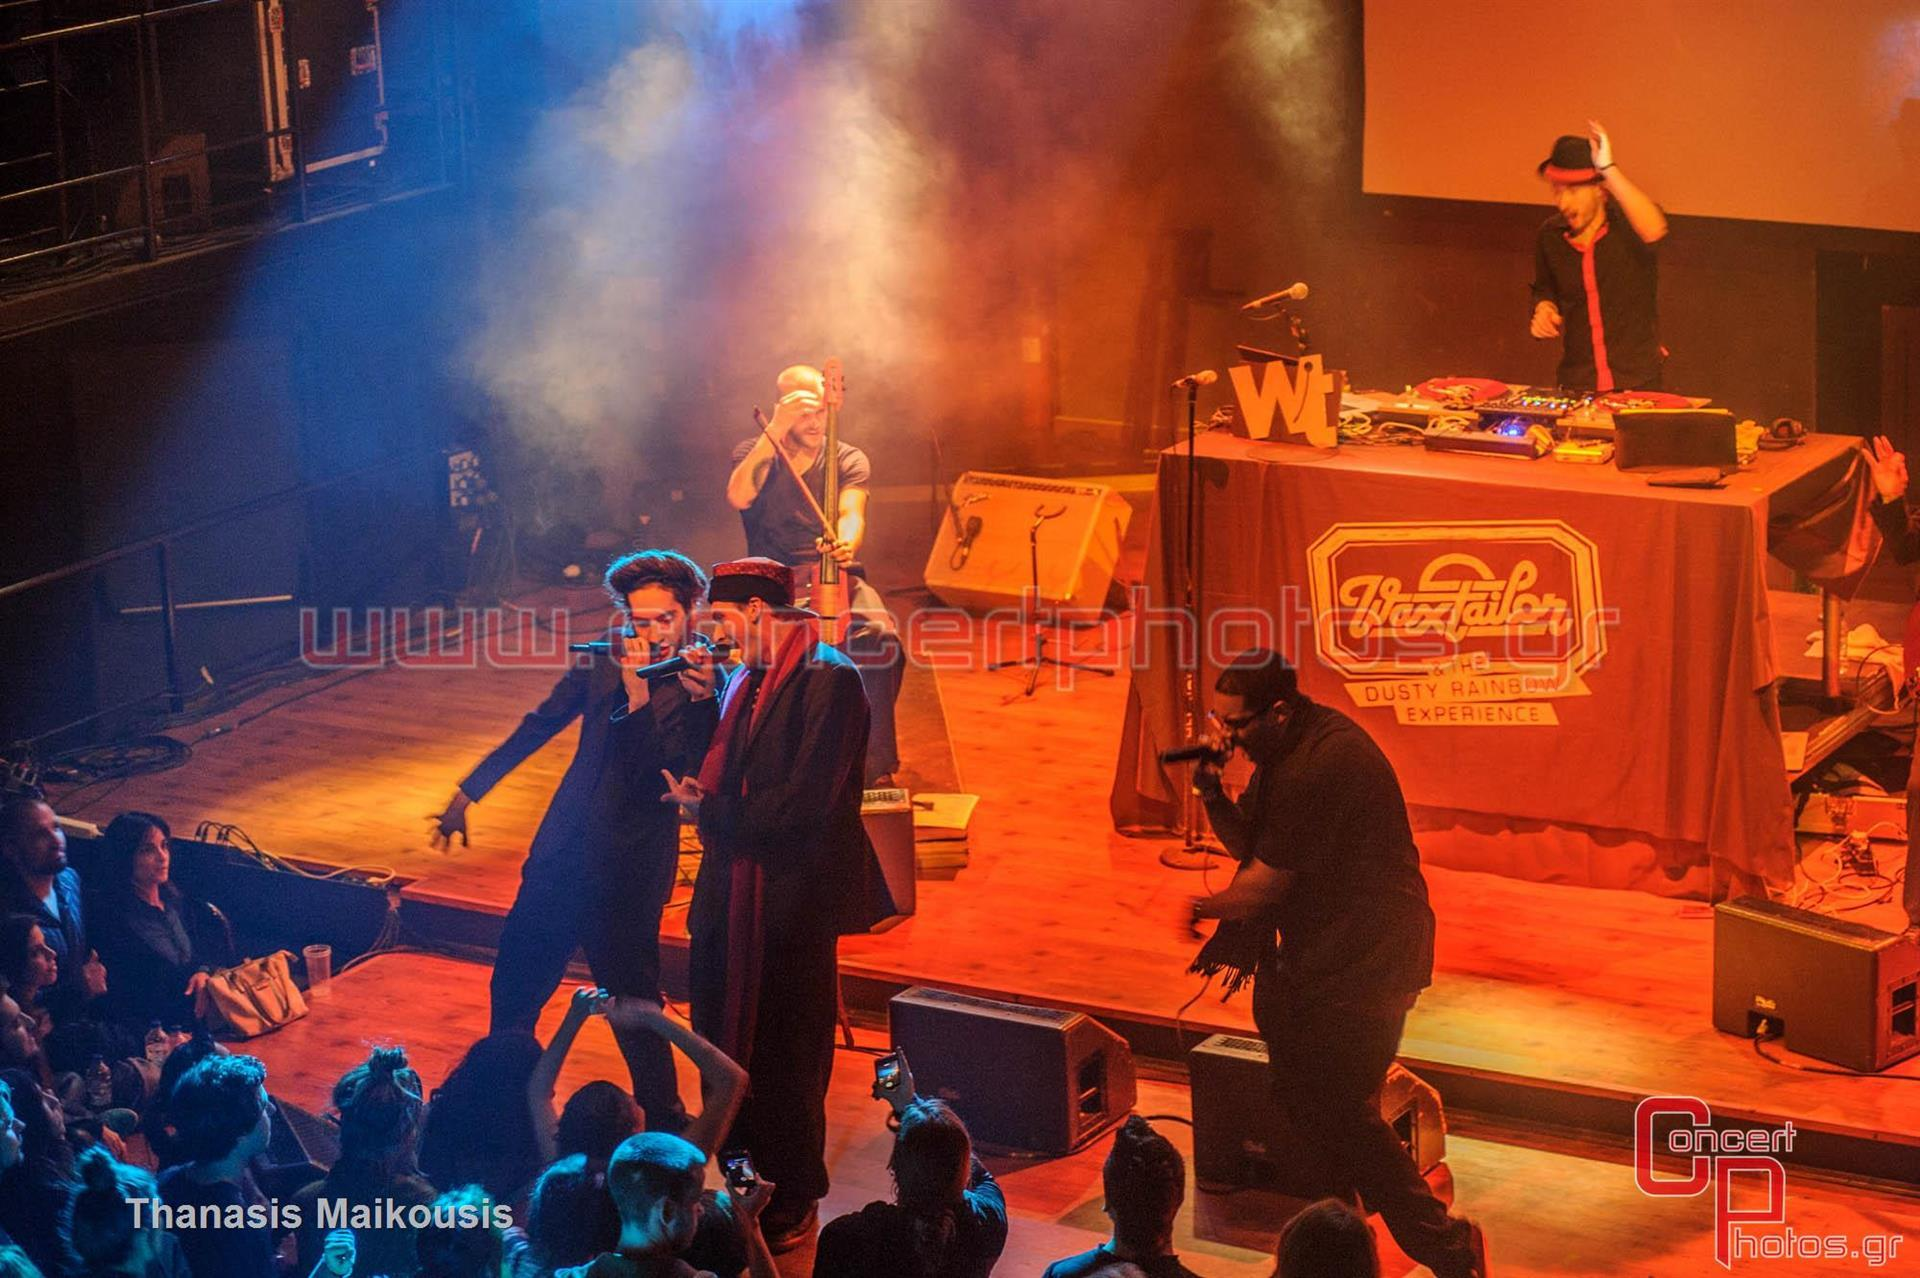 Wax Tailor - photographer: Thanasis Maikousis - ConcertPhotos-8163